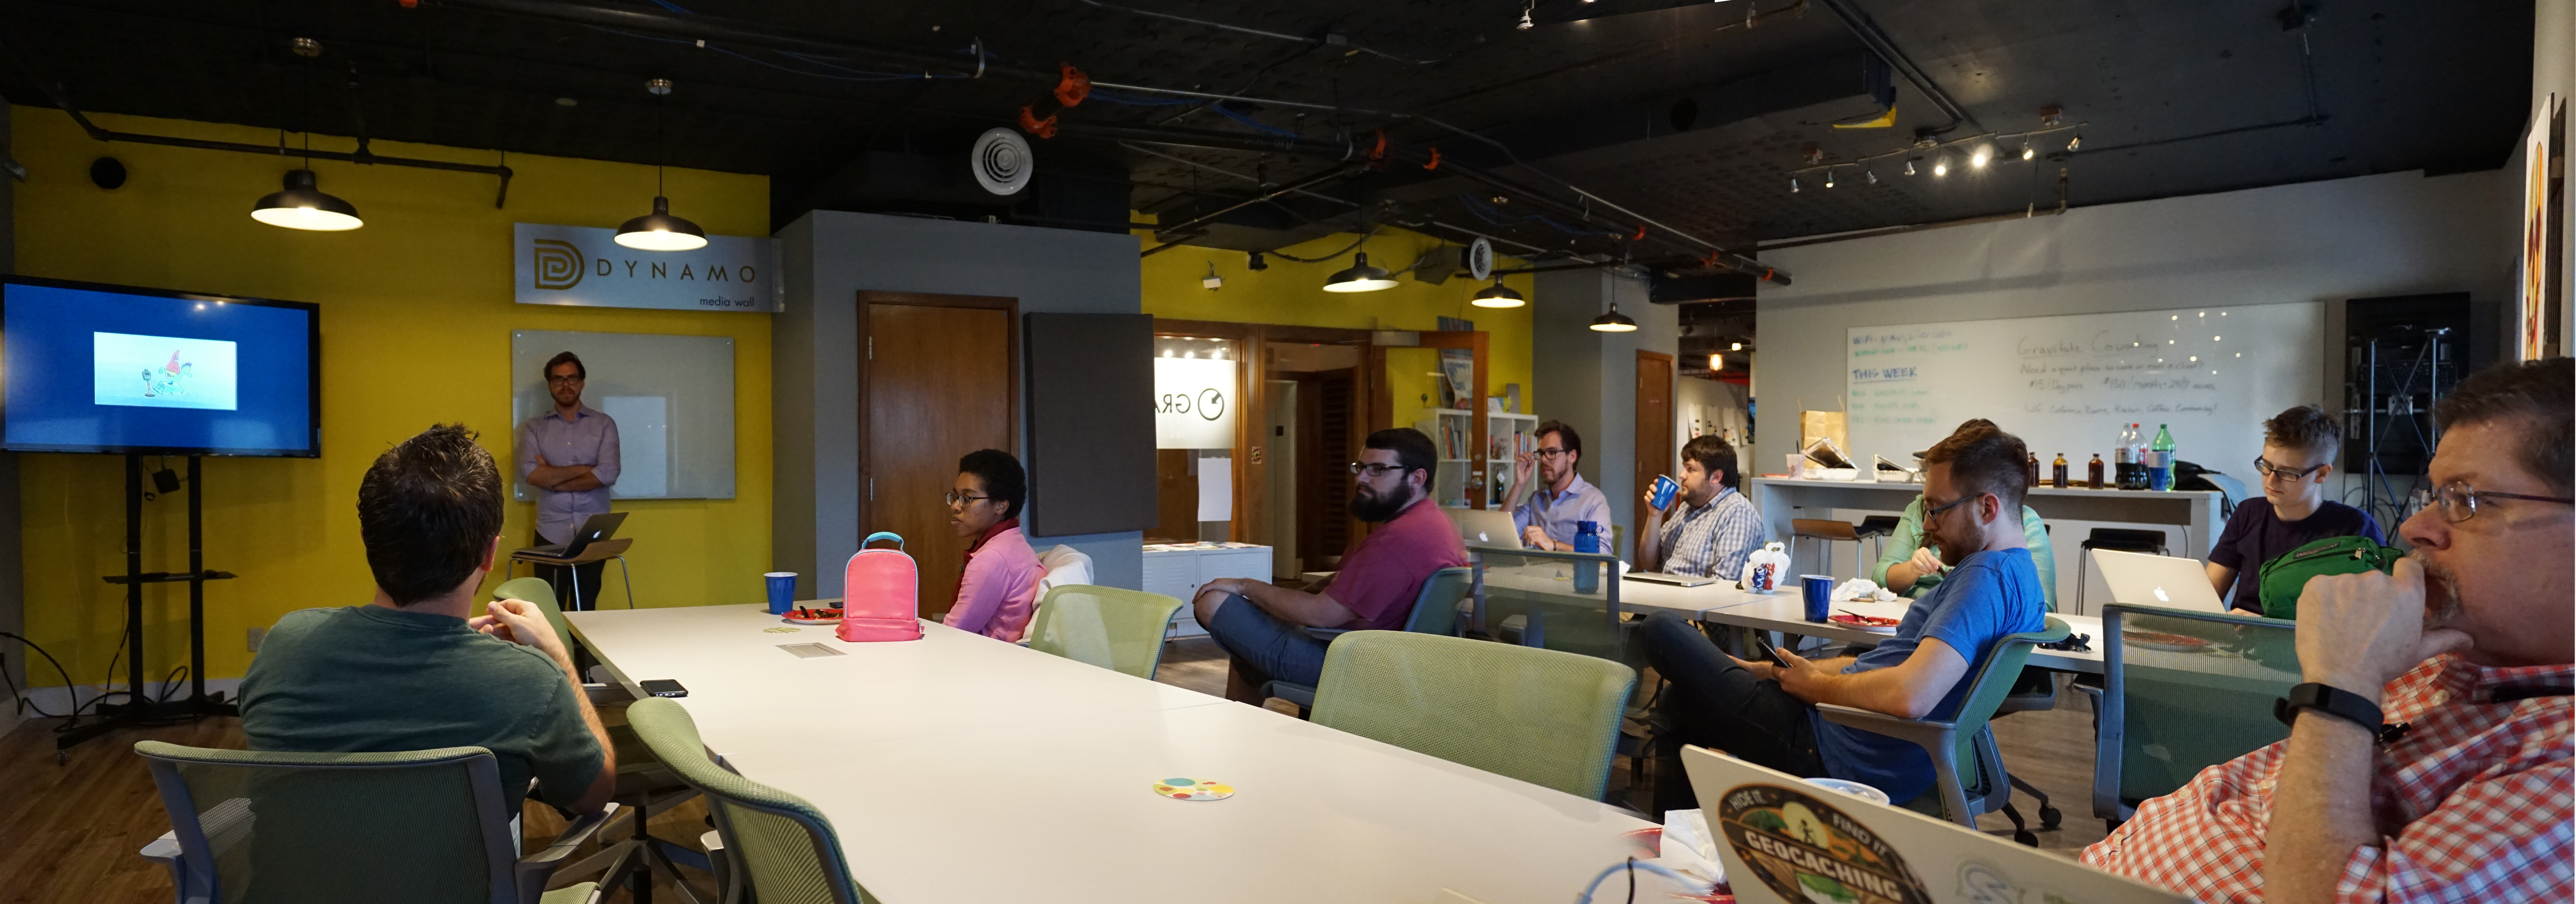 course in wordpress rest api at des moines meetup wpdsm